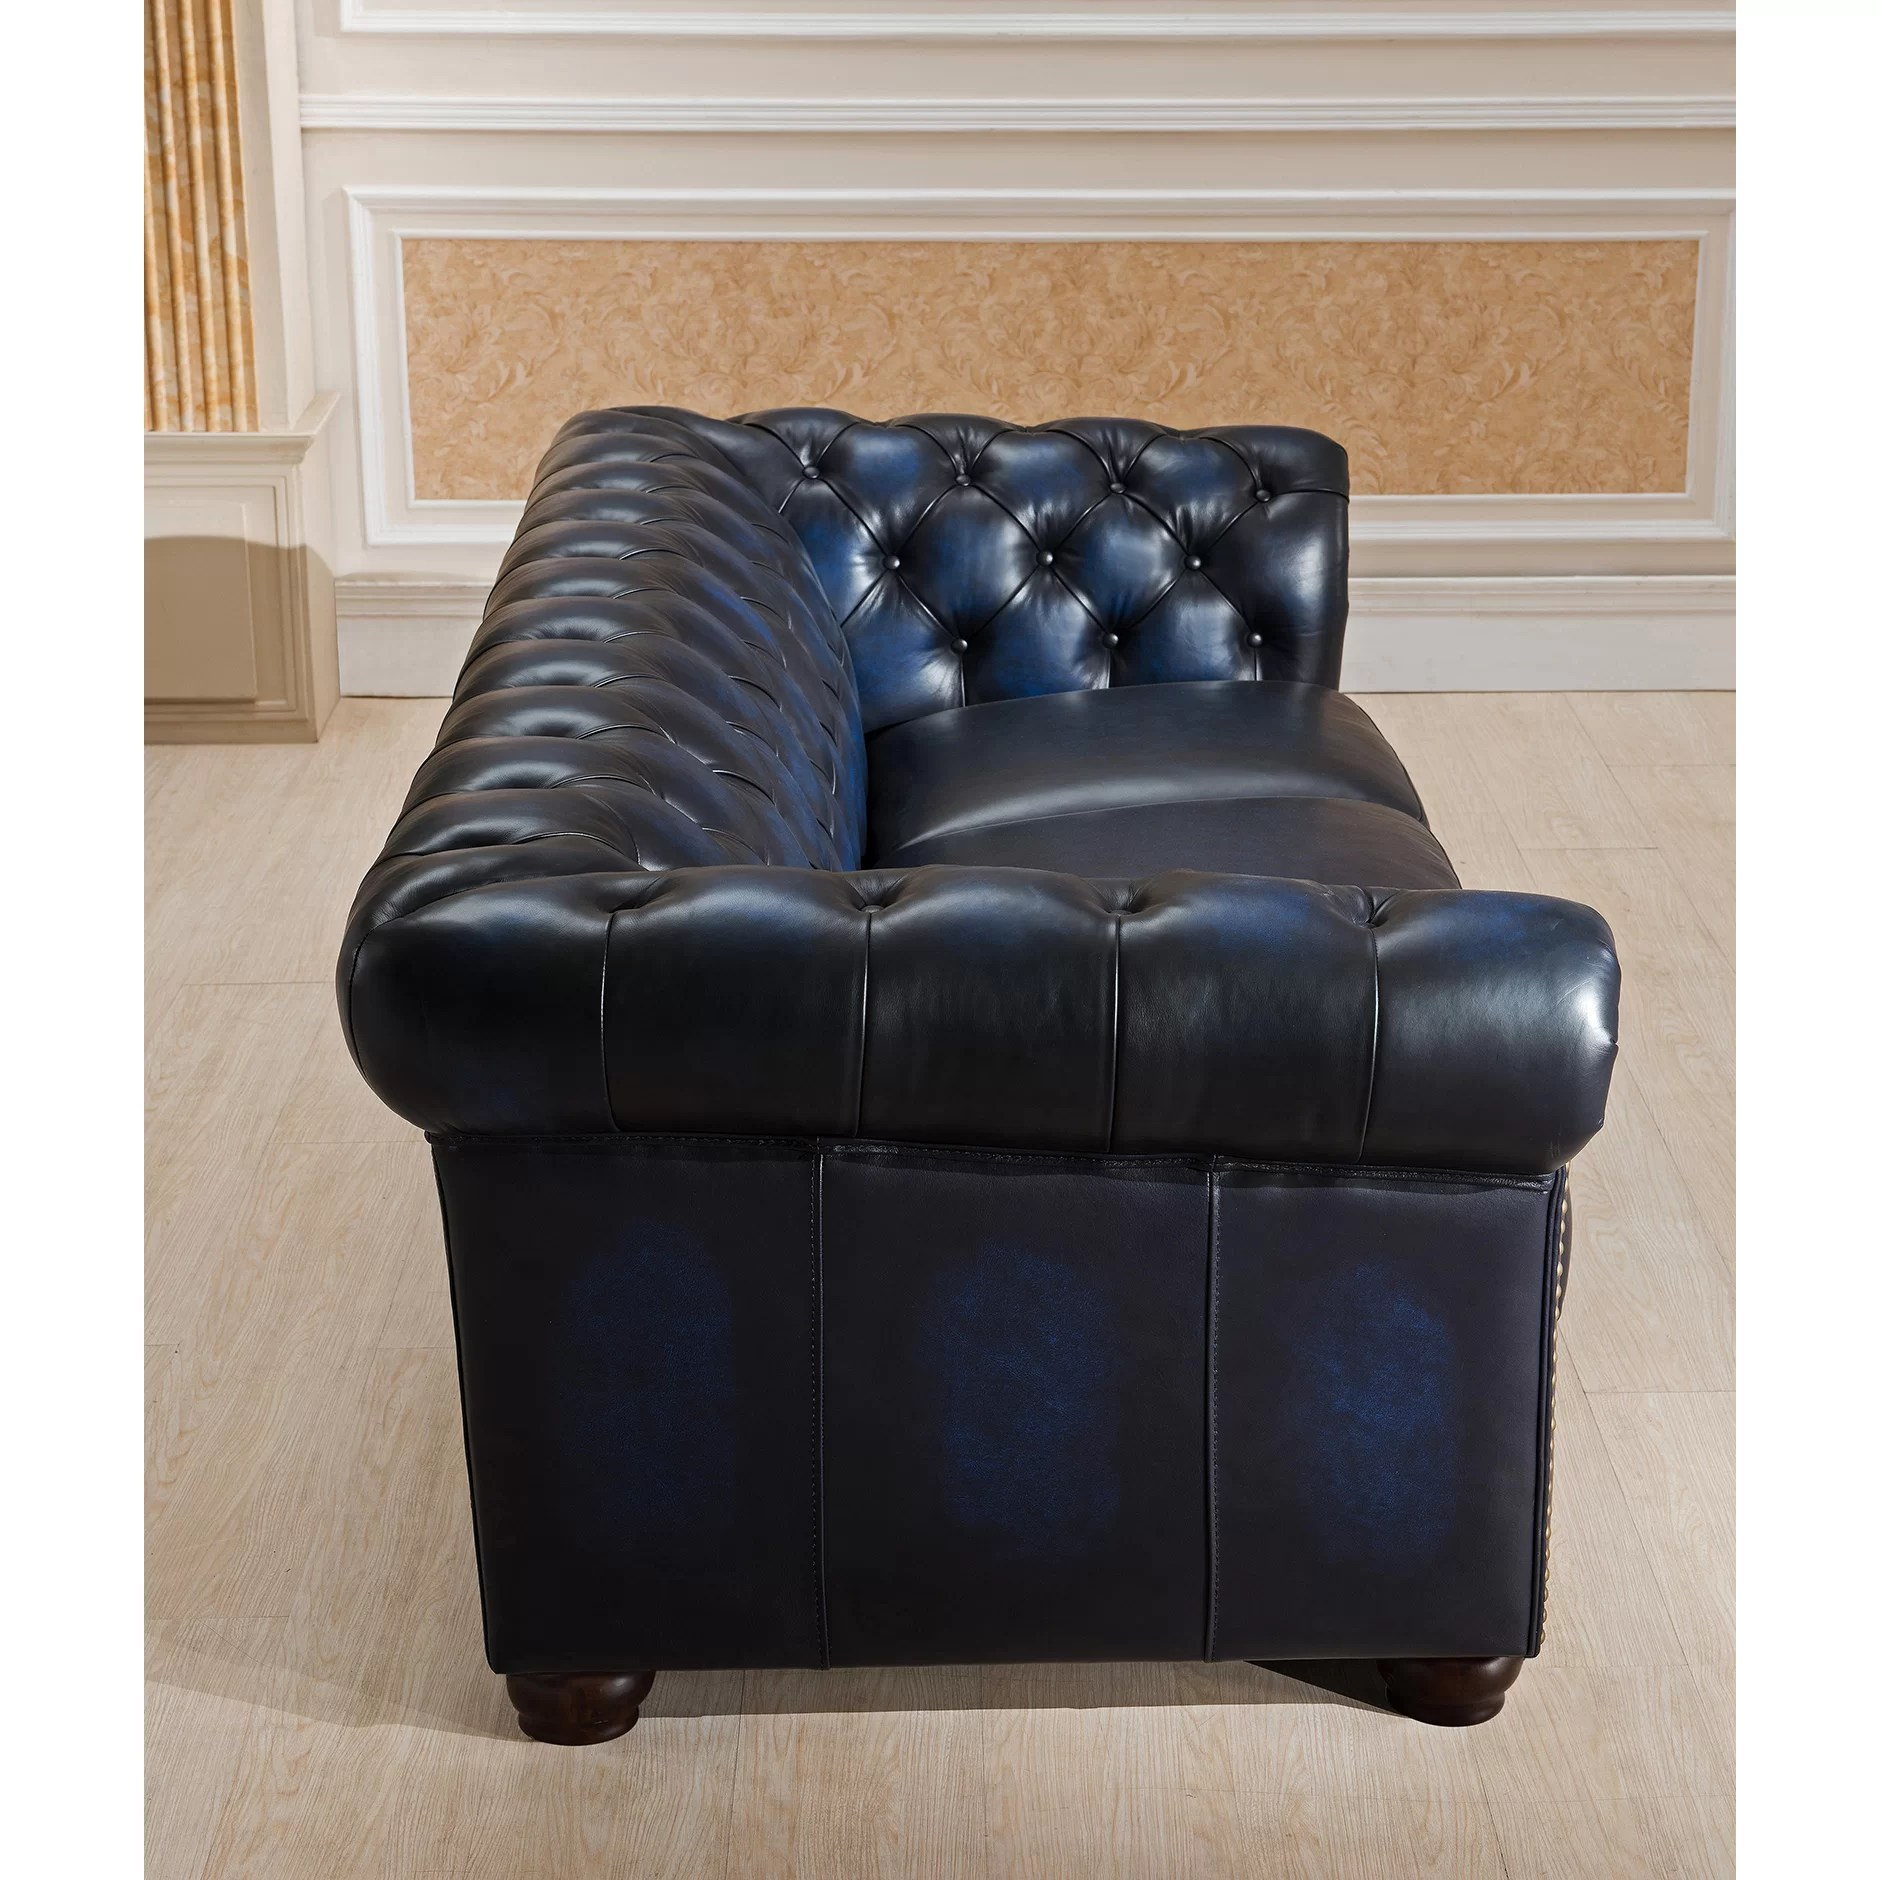 genuine leather sofa sets corinthians sp botafogo rj sofascore amax nebraska chesterfield and